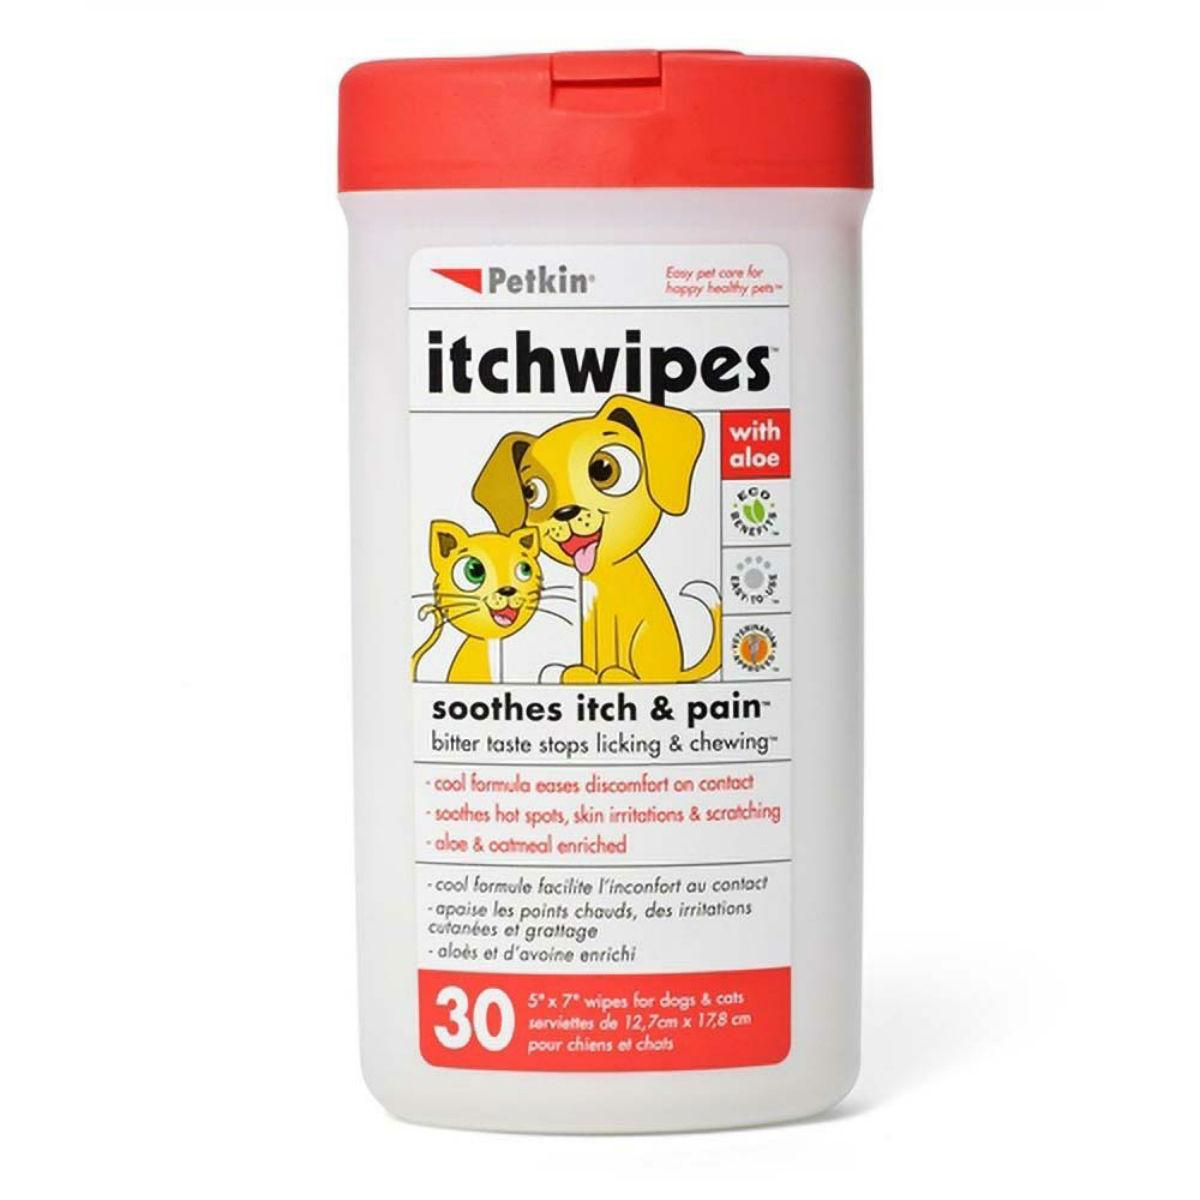 PetKin Itch Wipes for Dogs and Cats